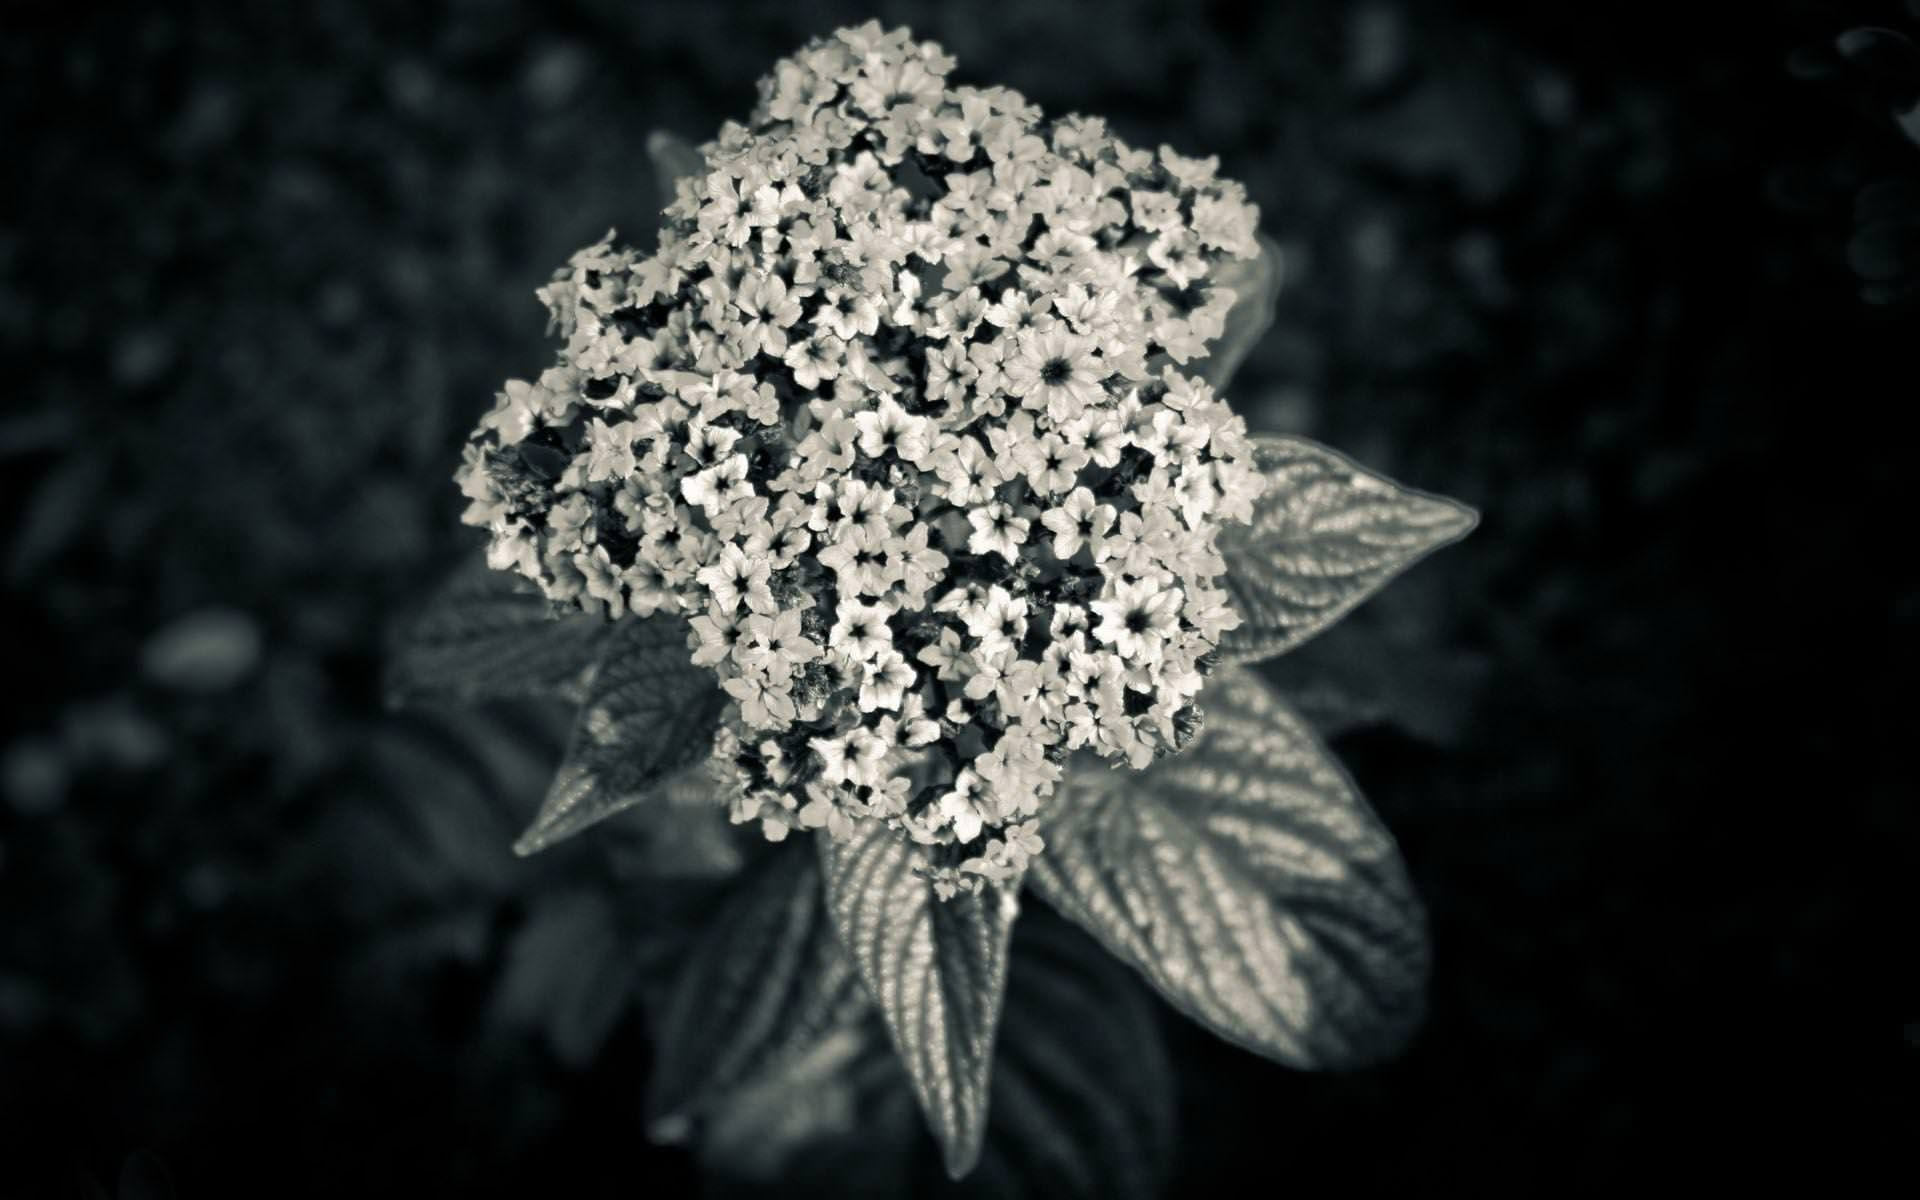 HD Black & White Flower Wallpaper